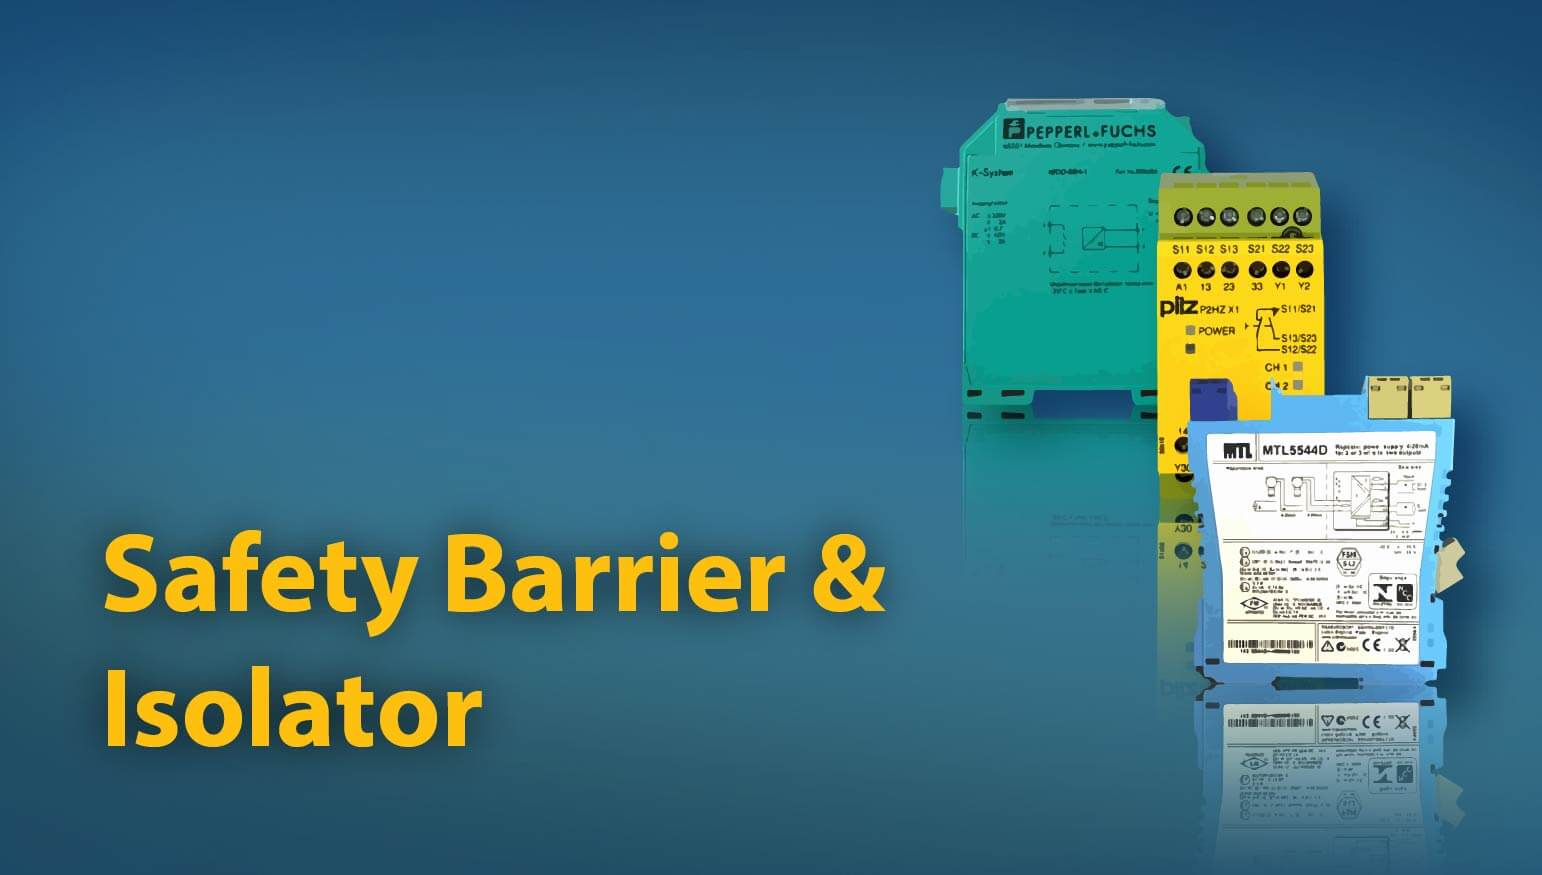 Safety Barrier & Isolator